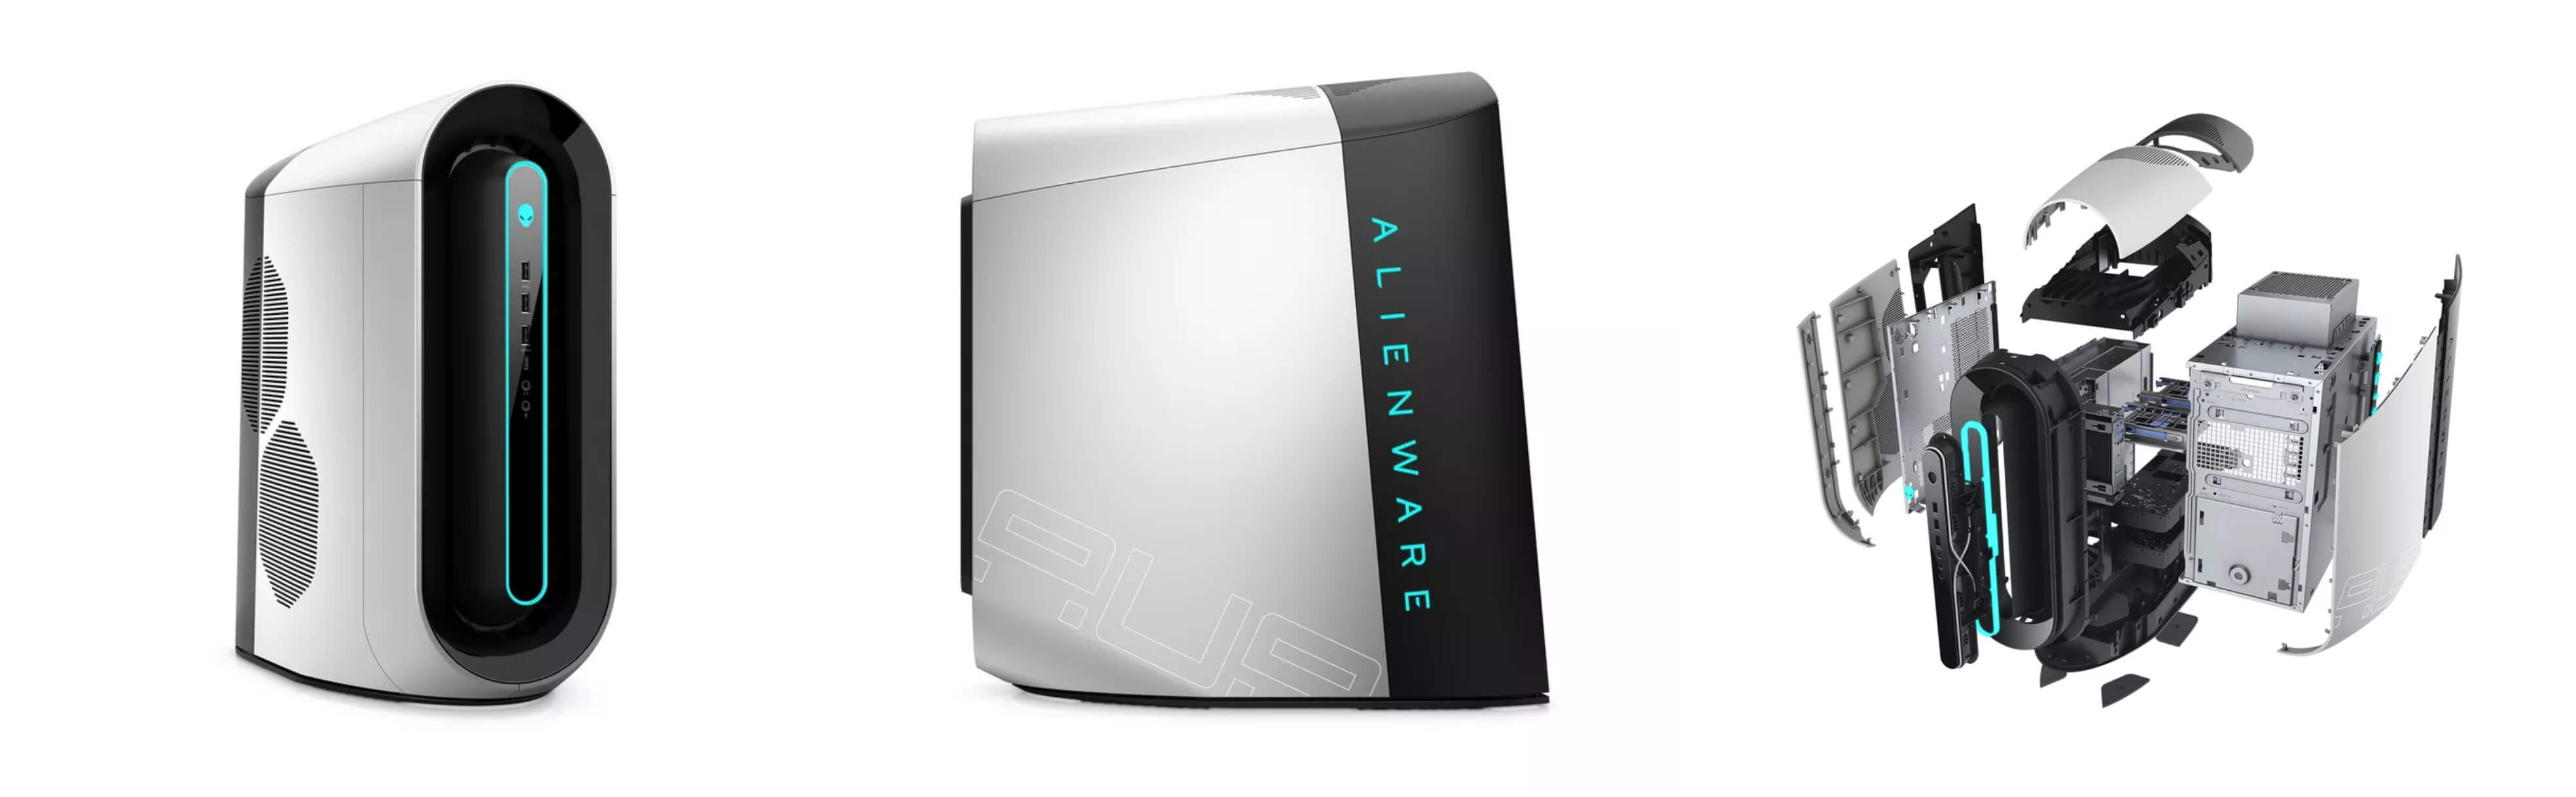 Alienware Refreshes The Aurora R9 Gaming Pc And Other Hardware With Its Legend Design Aesthetic